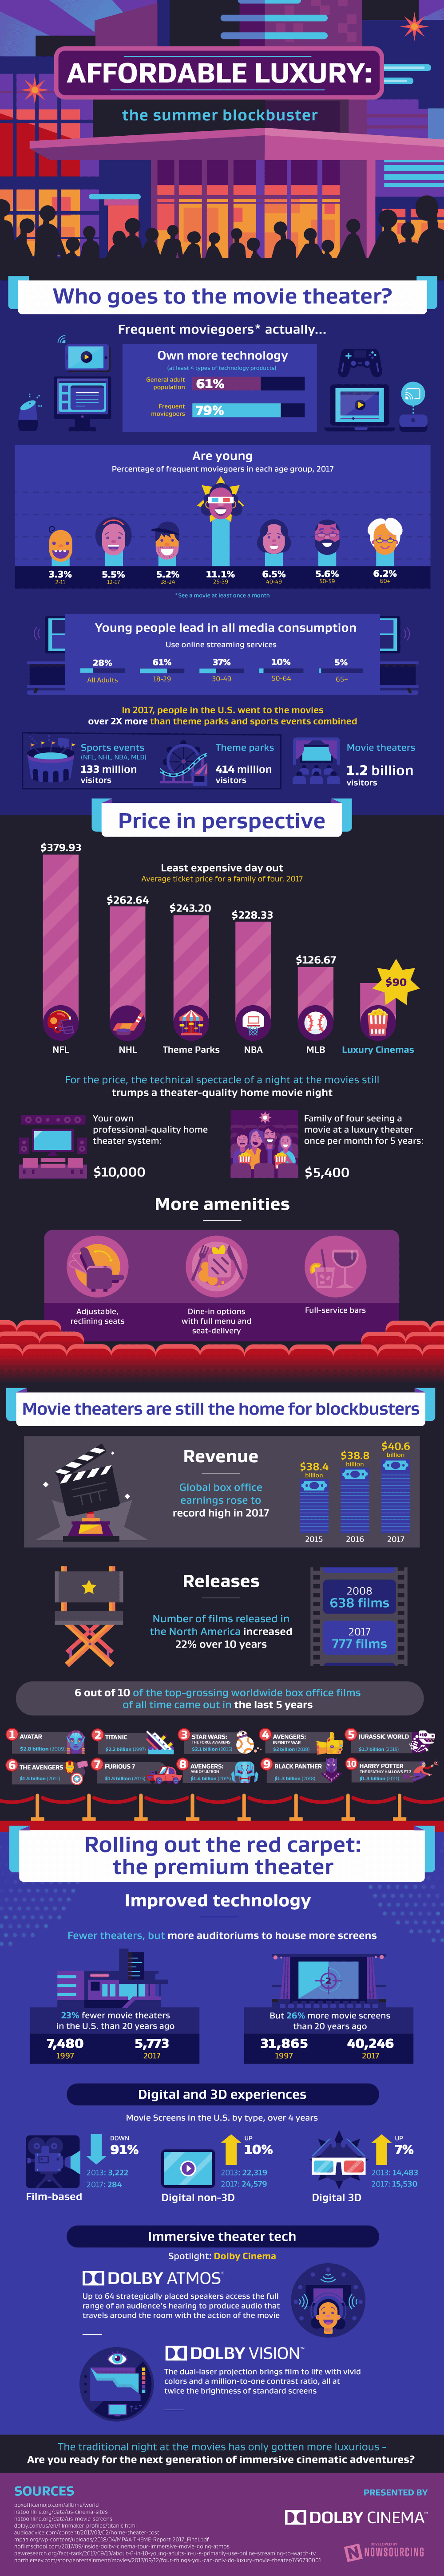 Affordable Luxury Movie Theaters